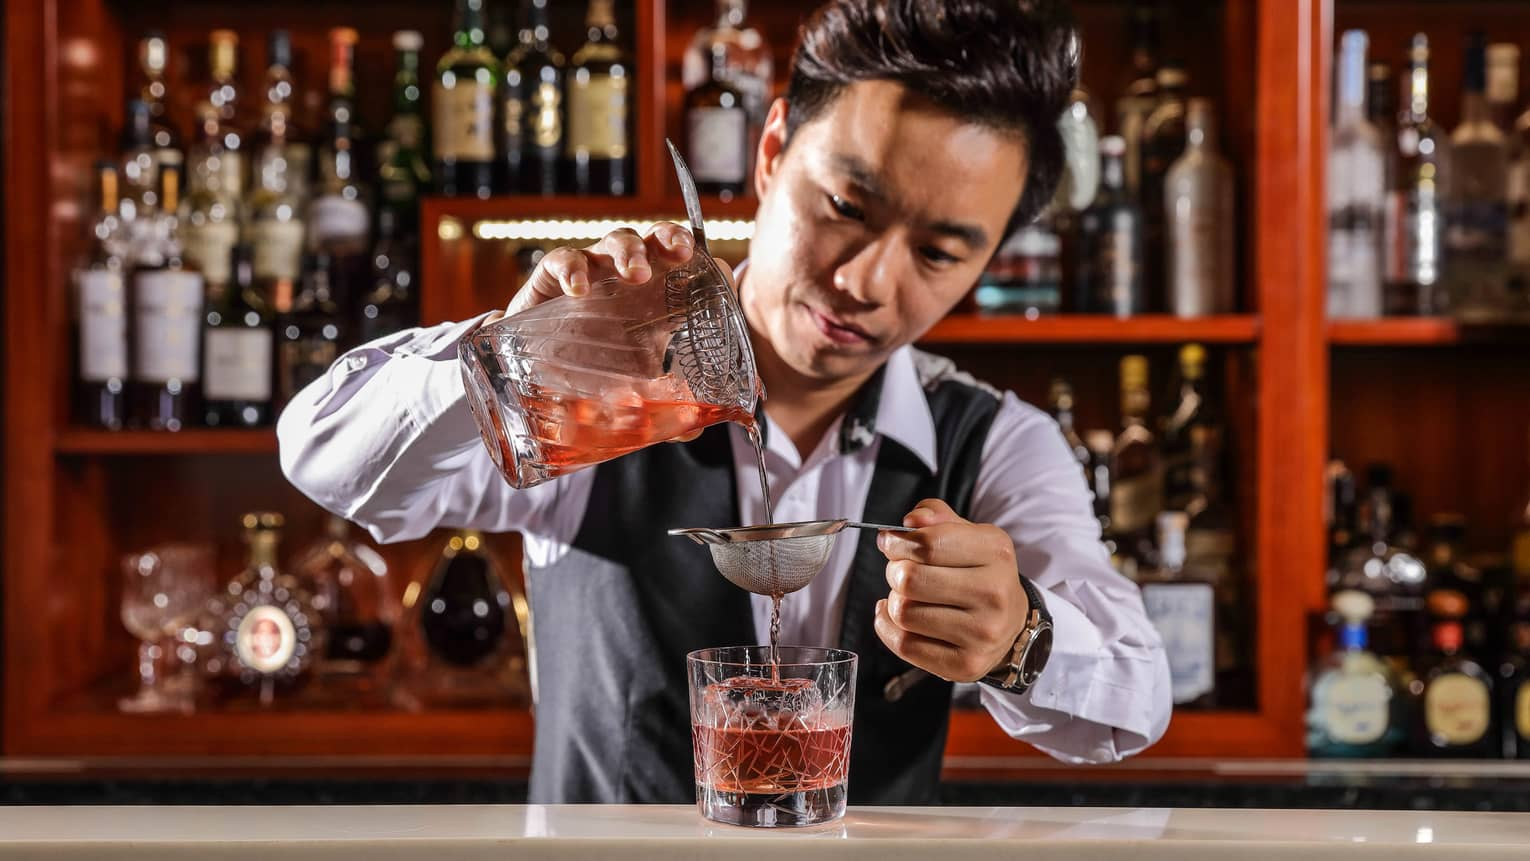 Bartender in black vest pours red cocktail from glass jug through strainer into glass